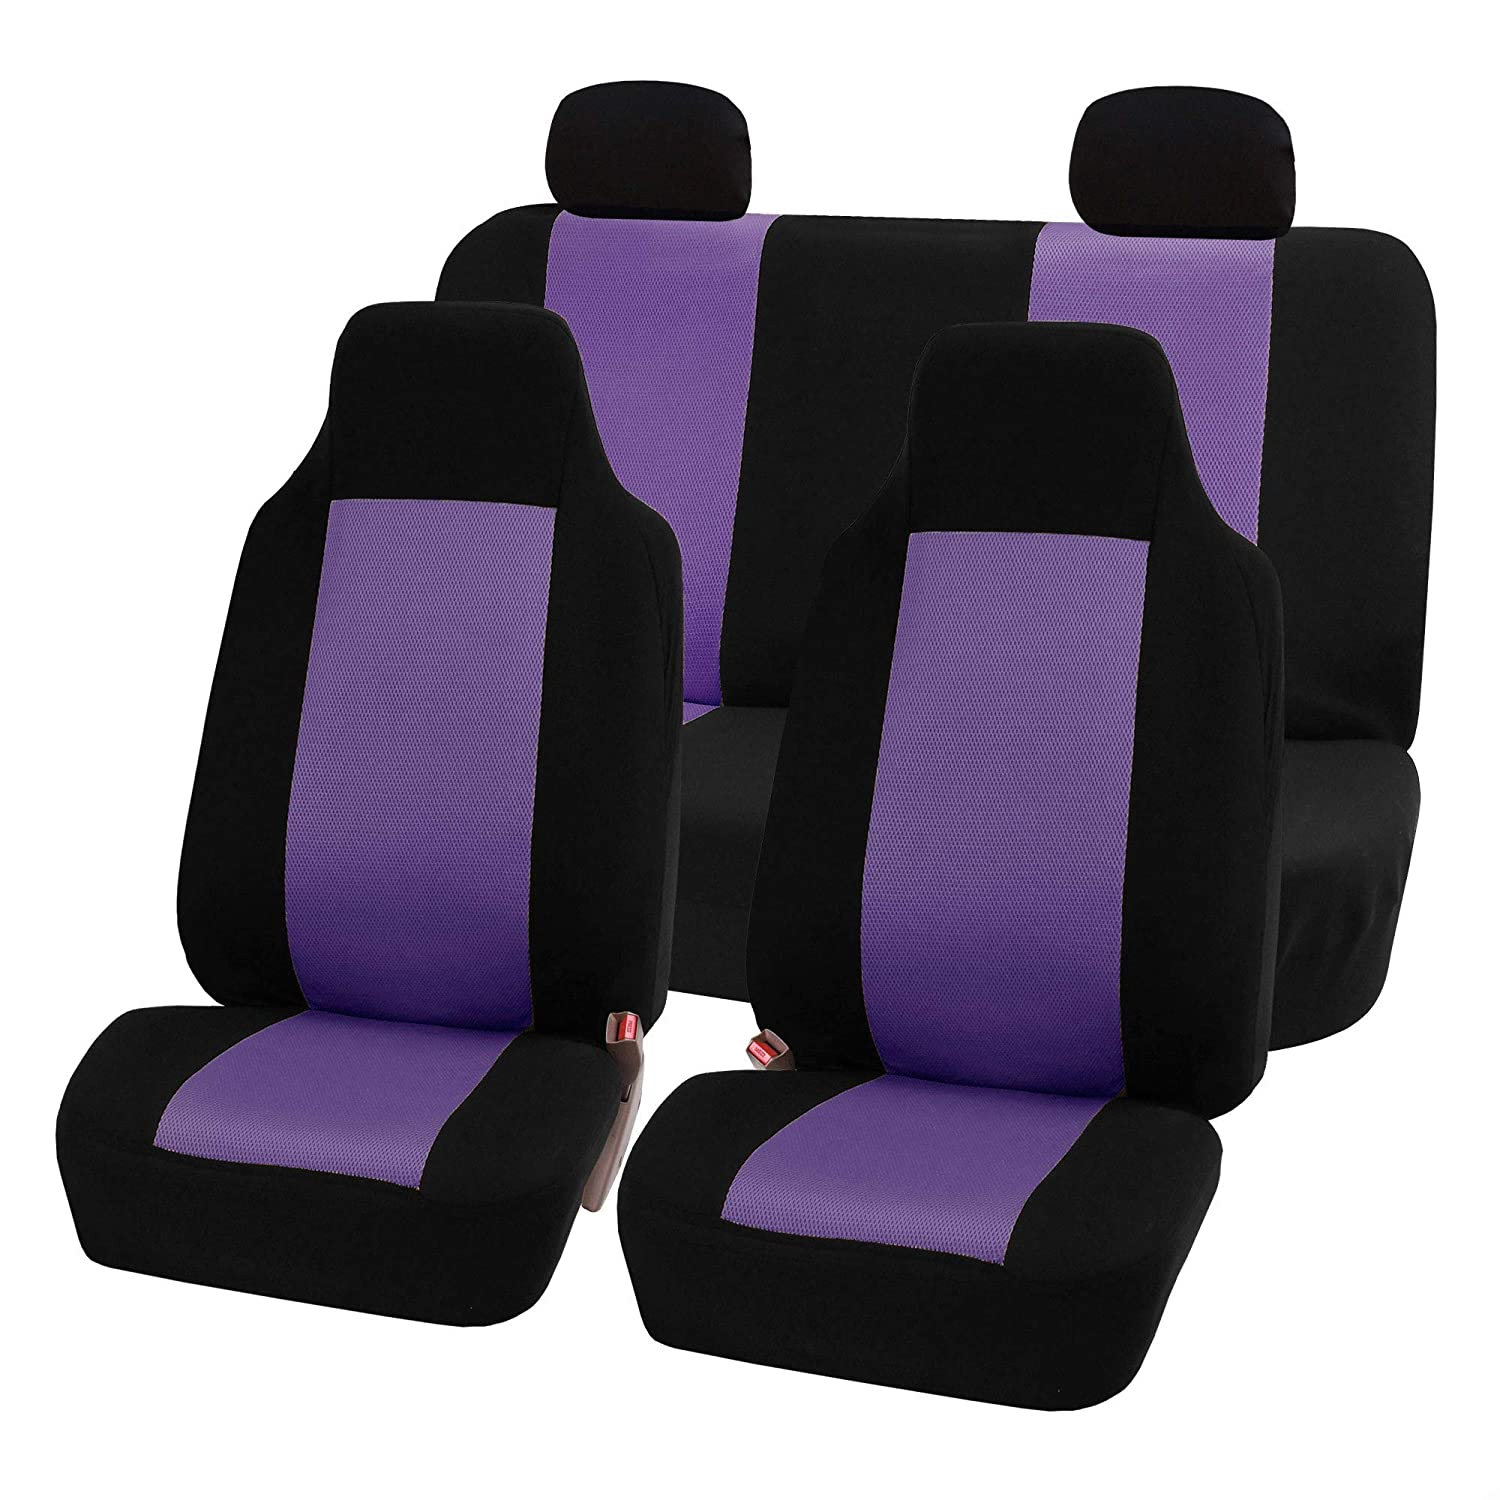 Set of 2 FH Group FB102RED102 Red Classic Cloth 3D Air Mesh Front Set Bucket Auto Seat Cover